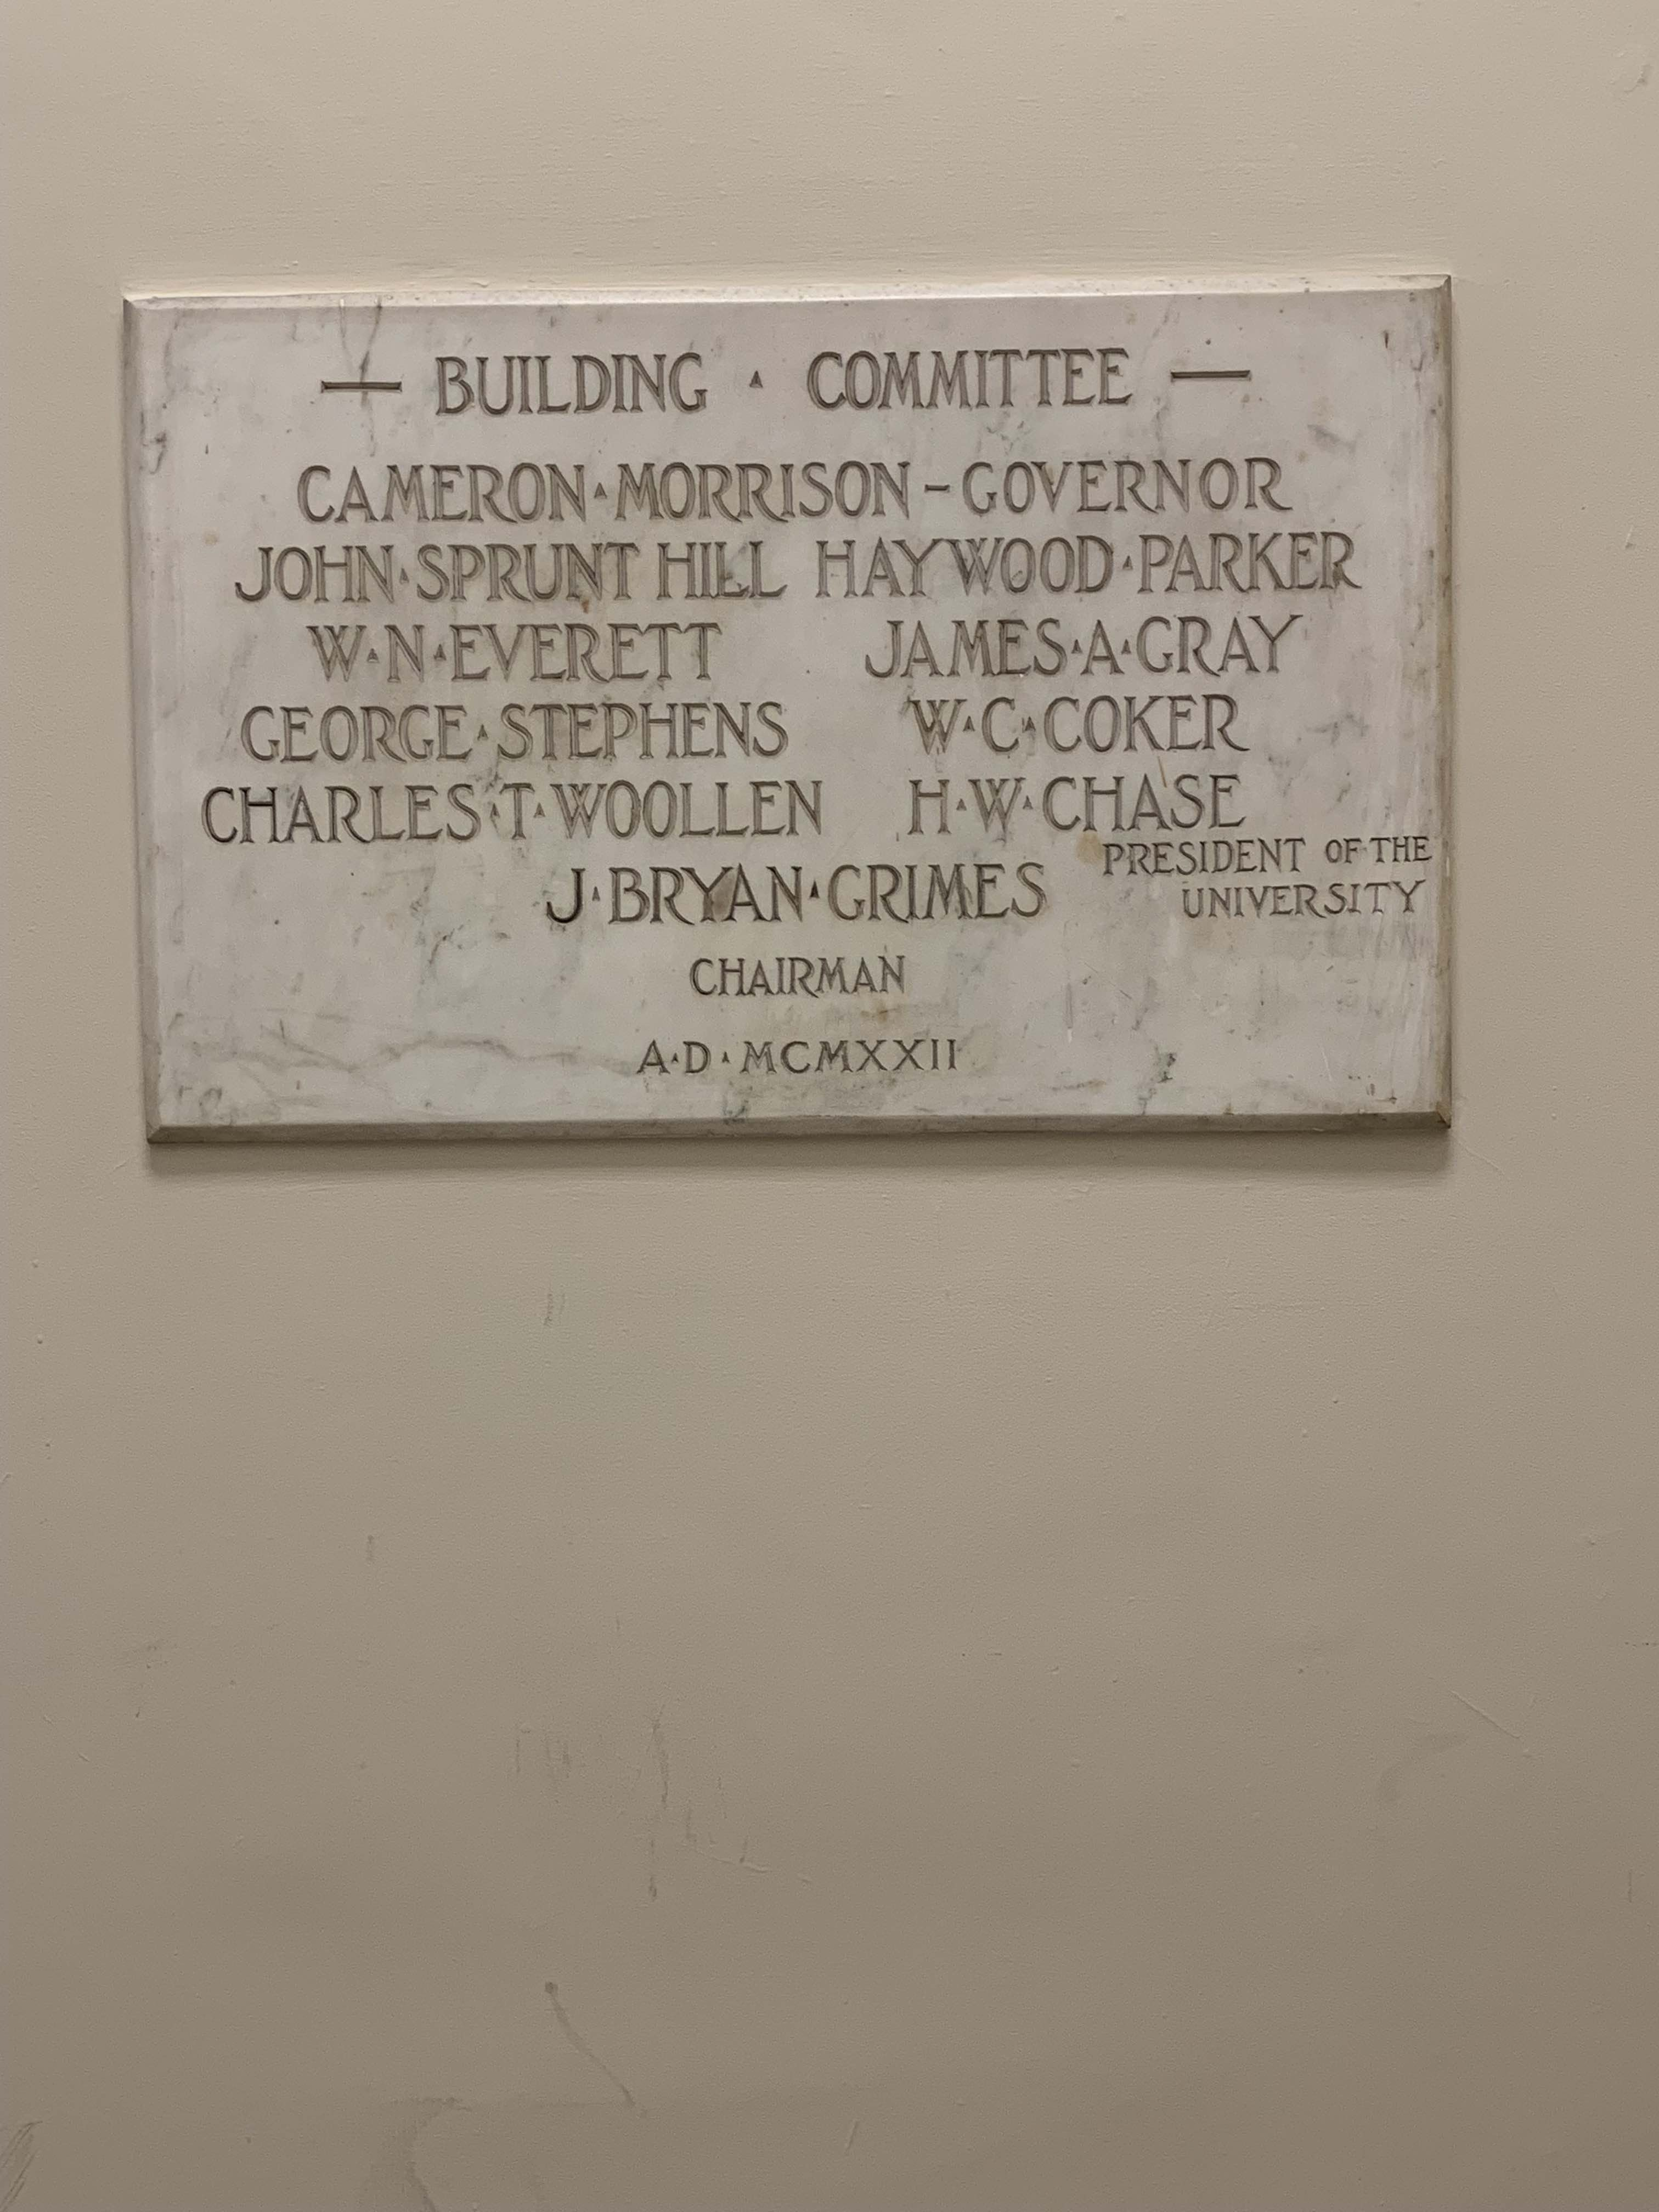 On this building committee plaque just inside Manning Hall's front doors are a few notable individuals. Both W. C. Coker and Charles T. Woollen also lent their names to buildings across UNC's campus.